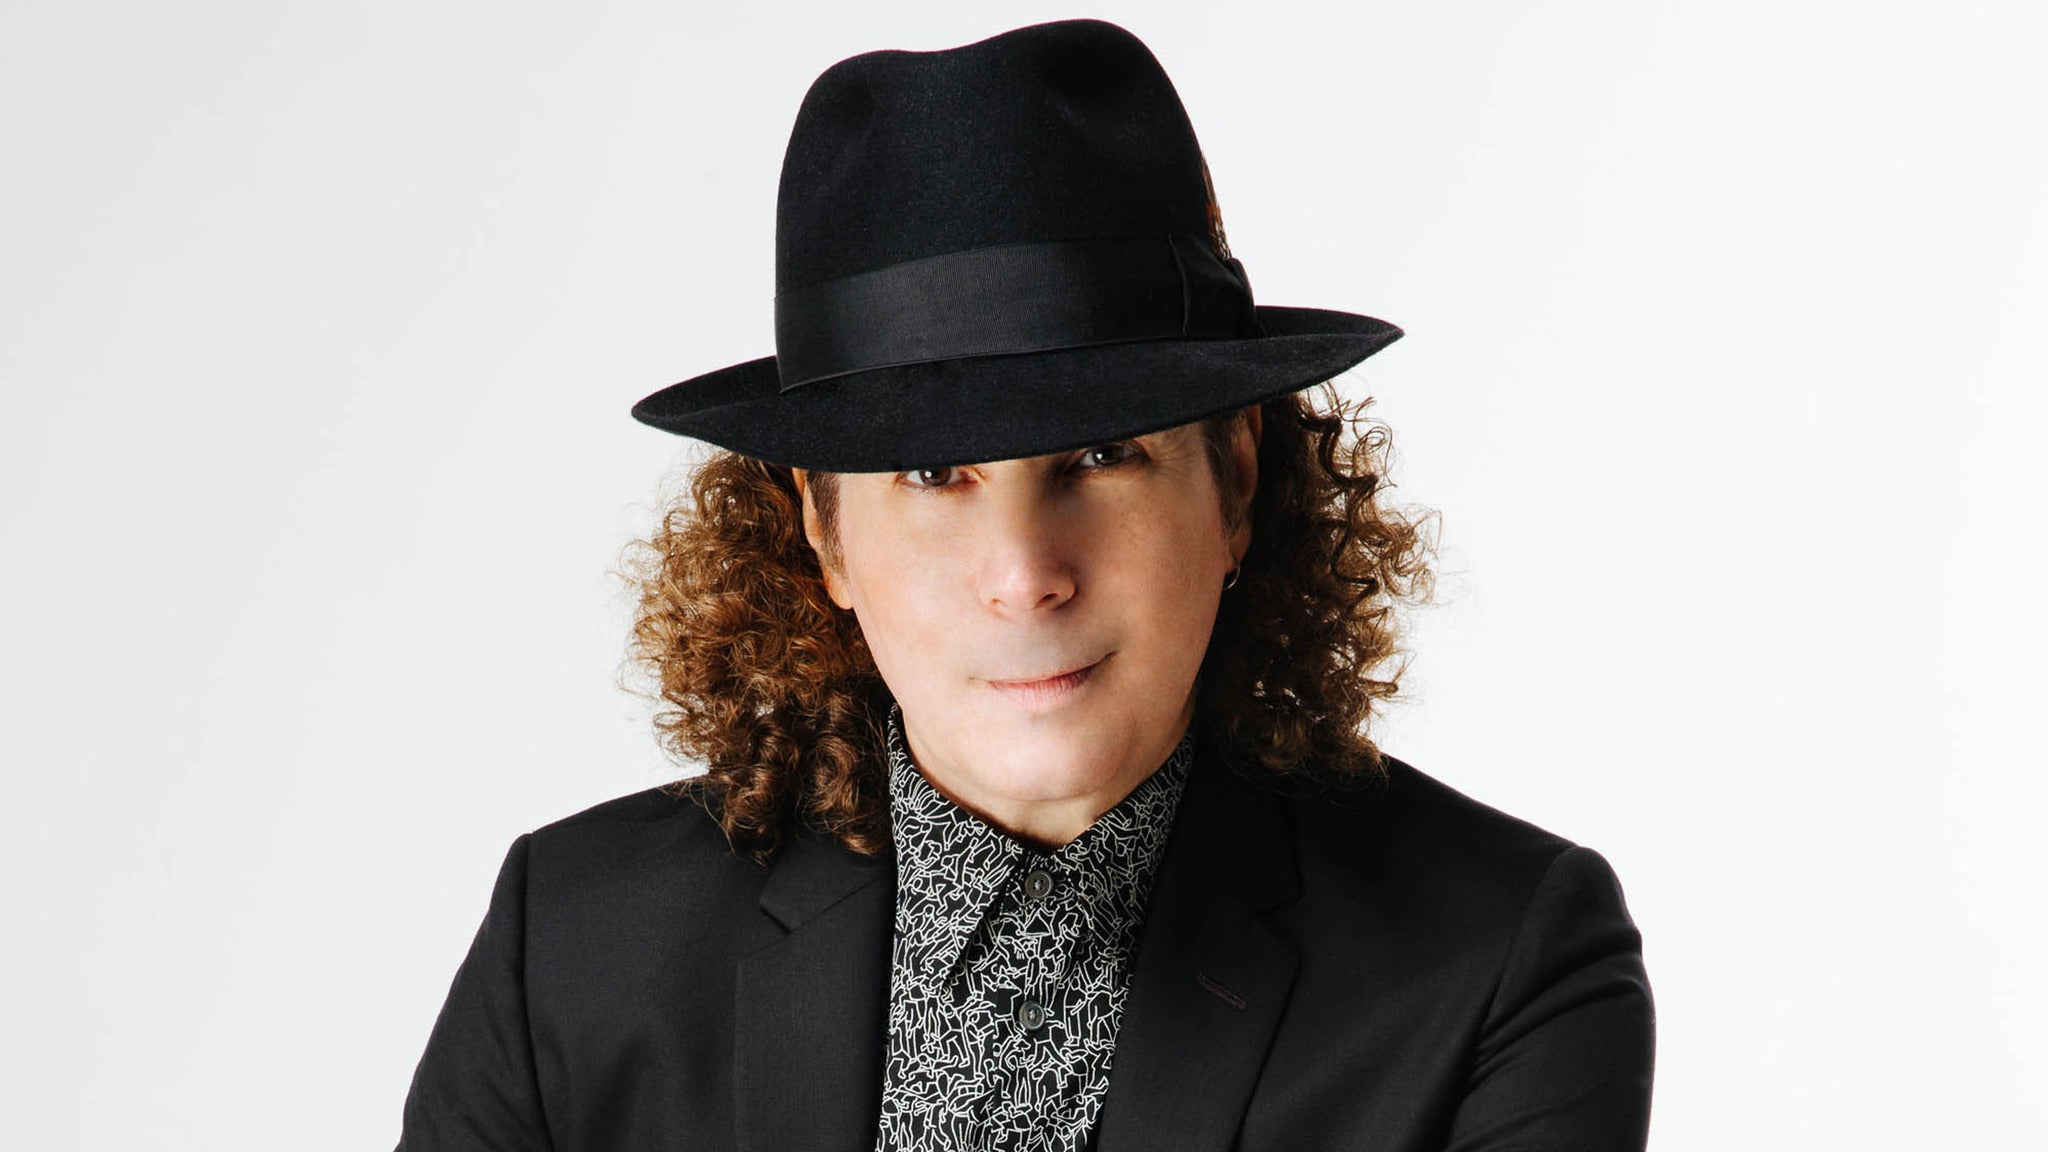 Boney James at Chandler Center for the Arts